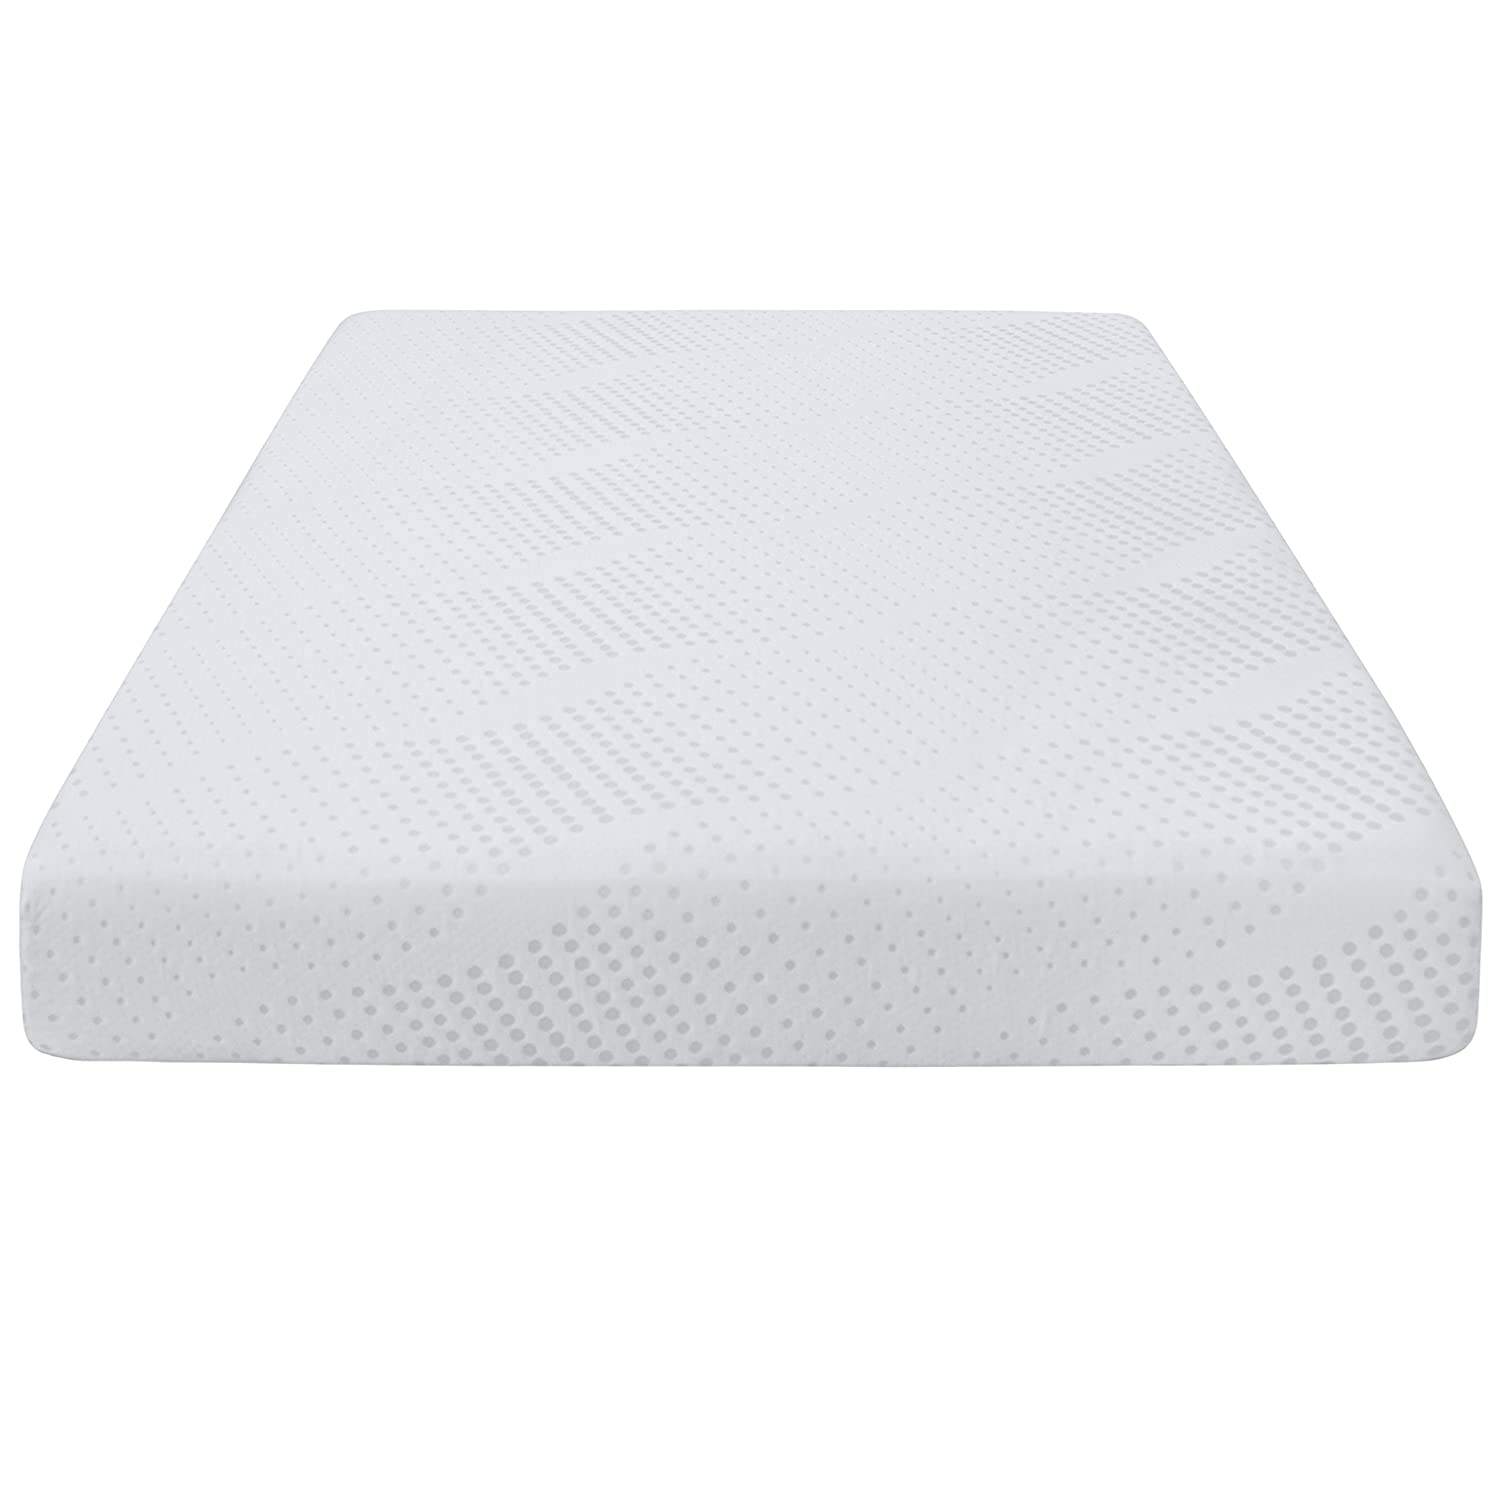 amazon com best choice products 10 dual layered memory foam